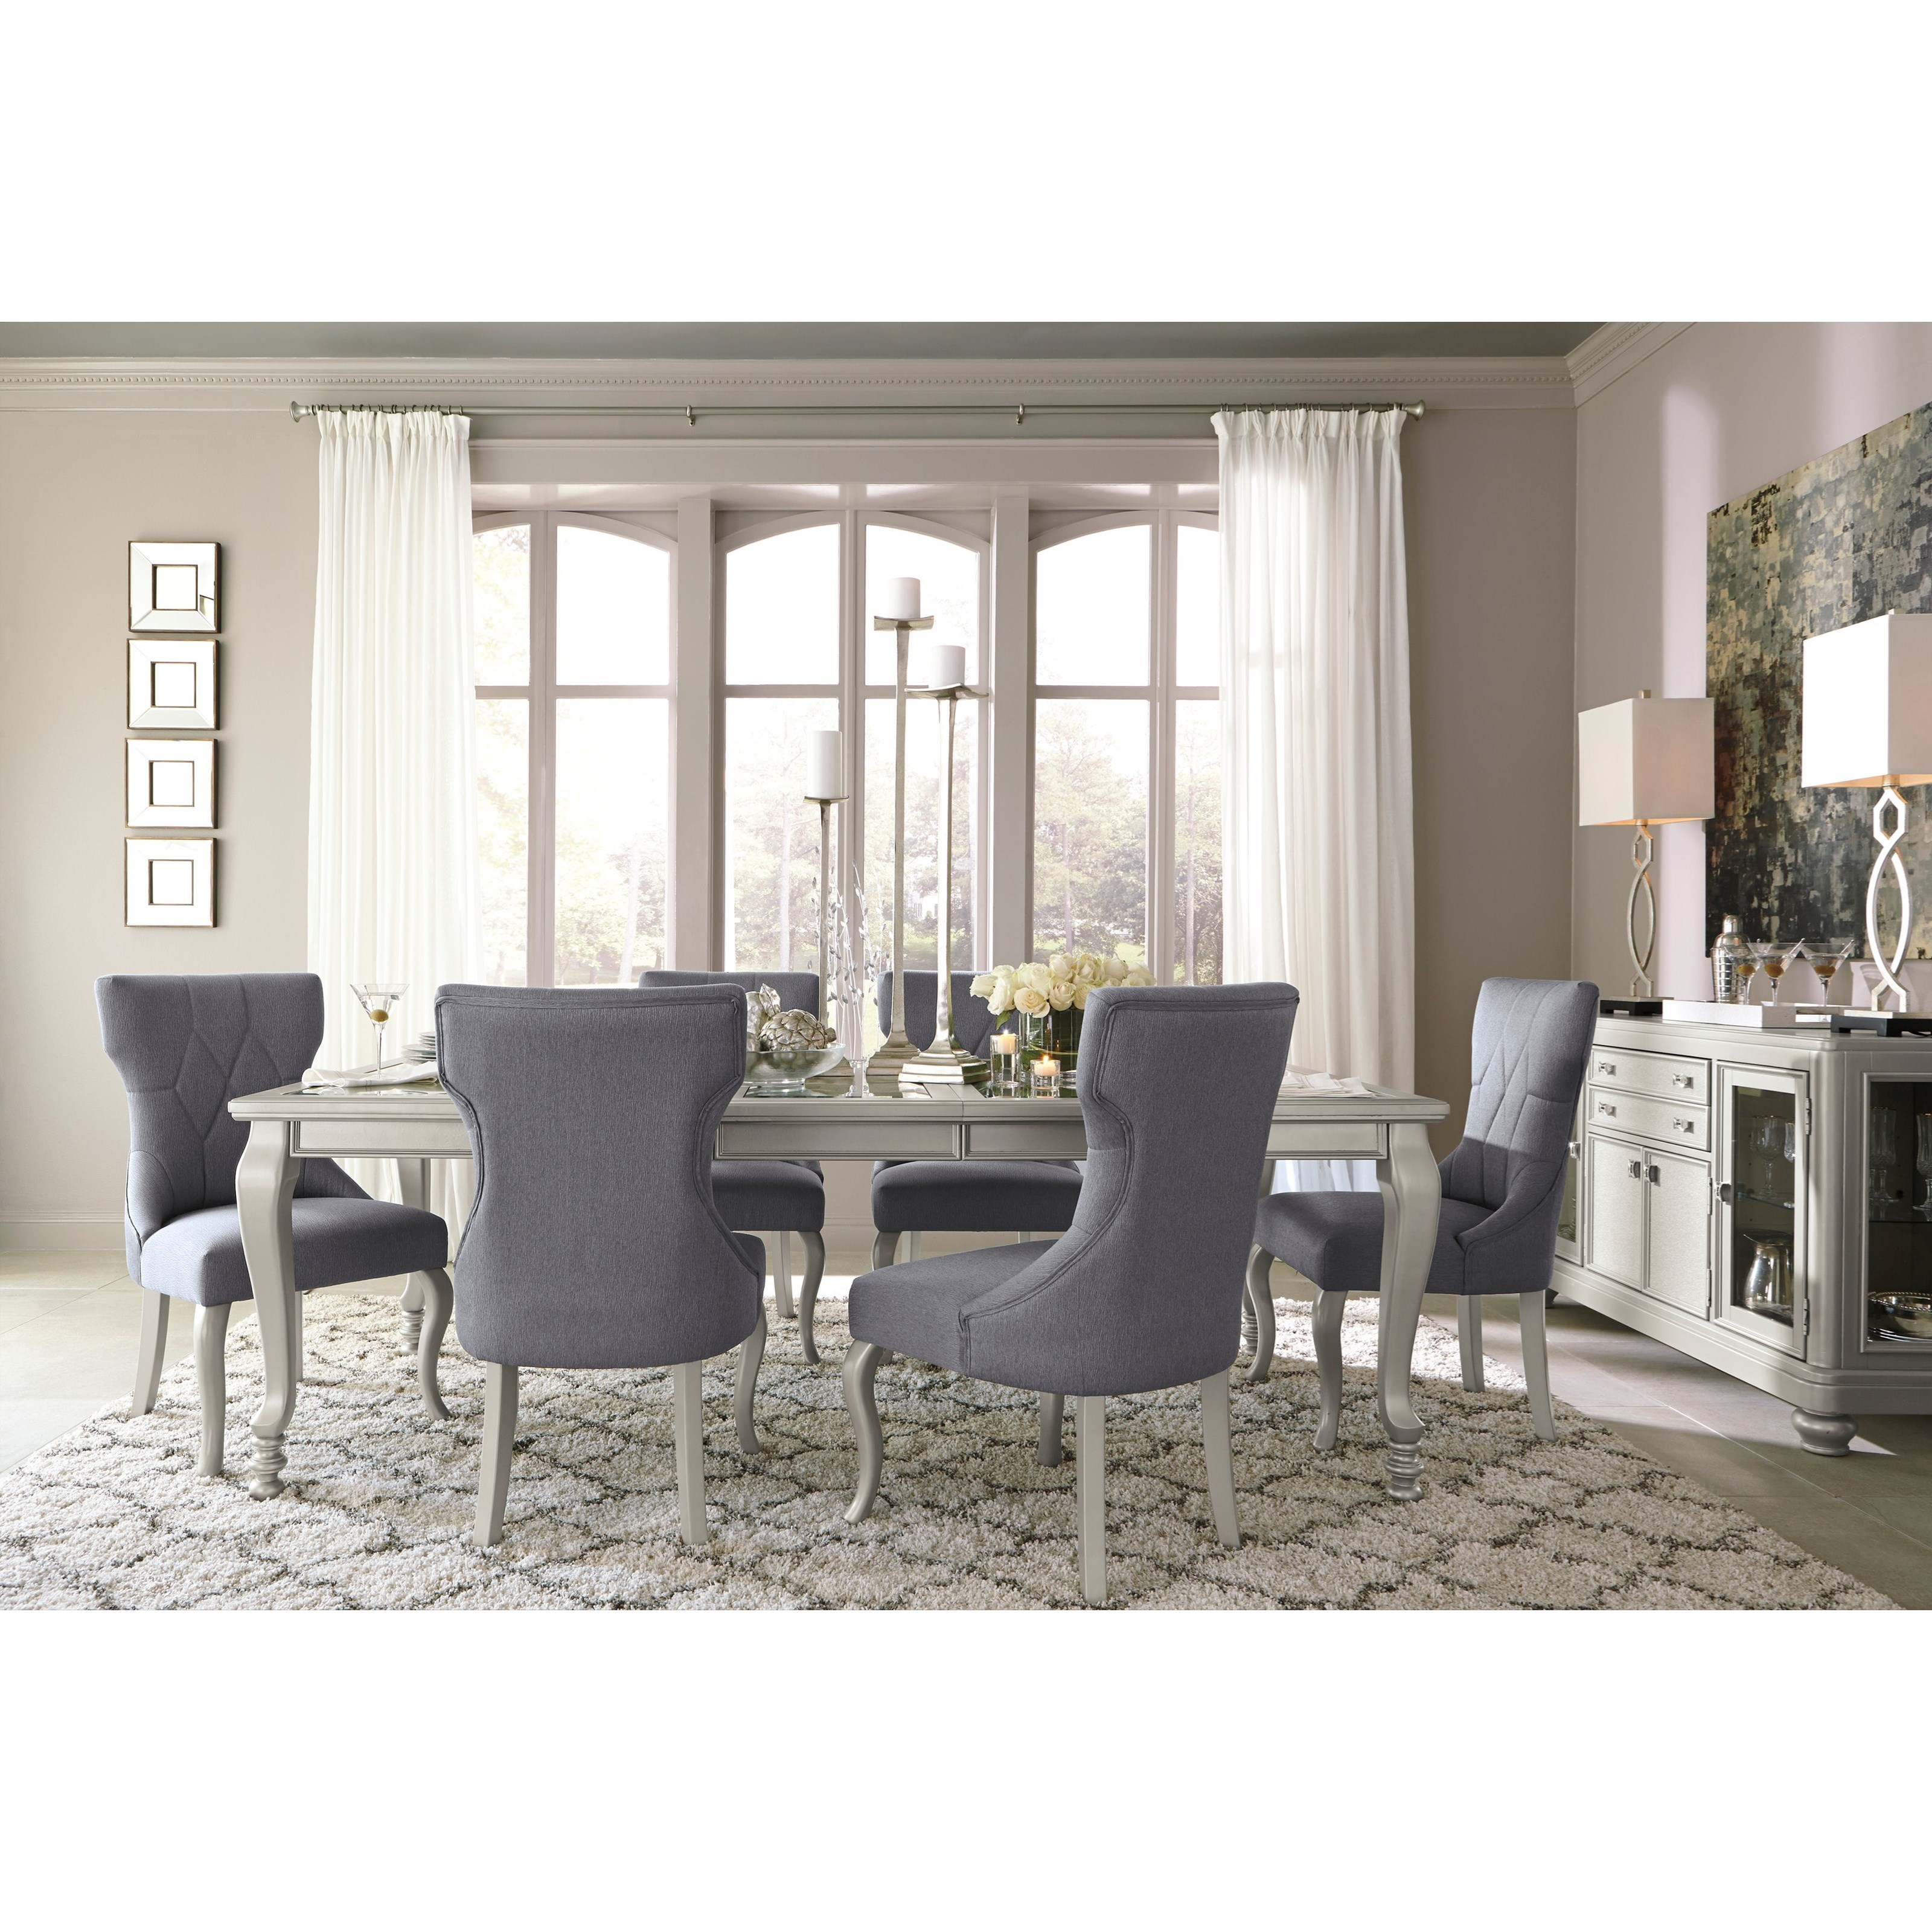 Ashley Furniture Superstore: Signature Design By Ashley Coralayne D650-01 Dining